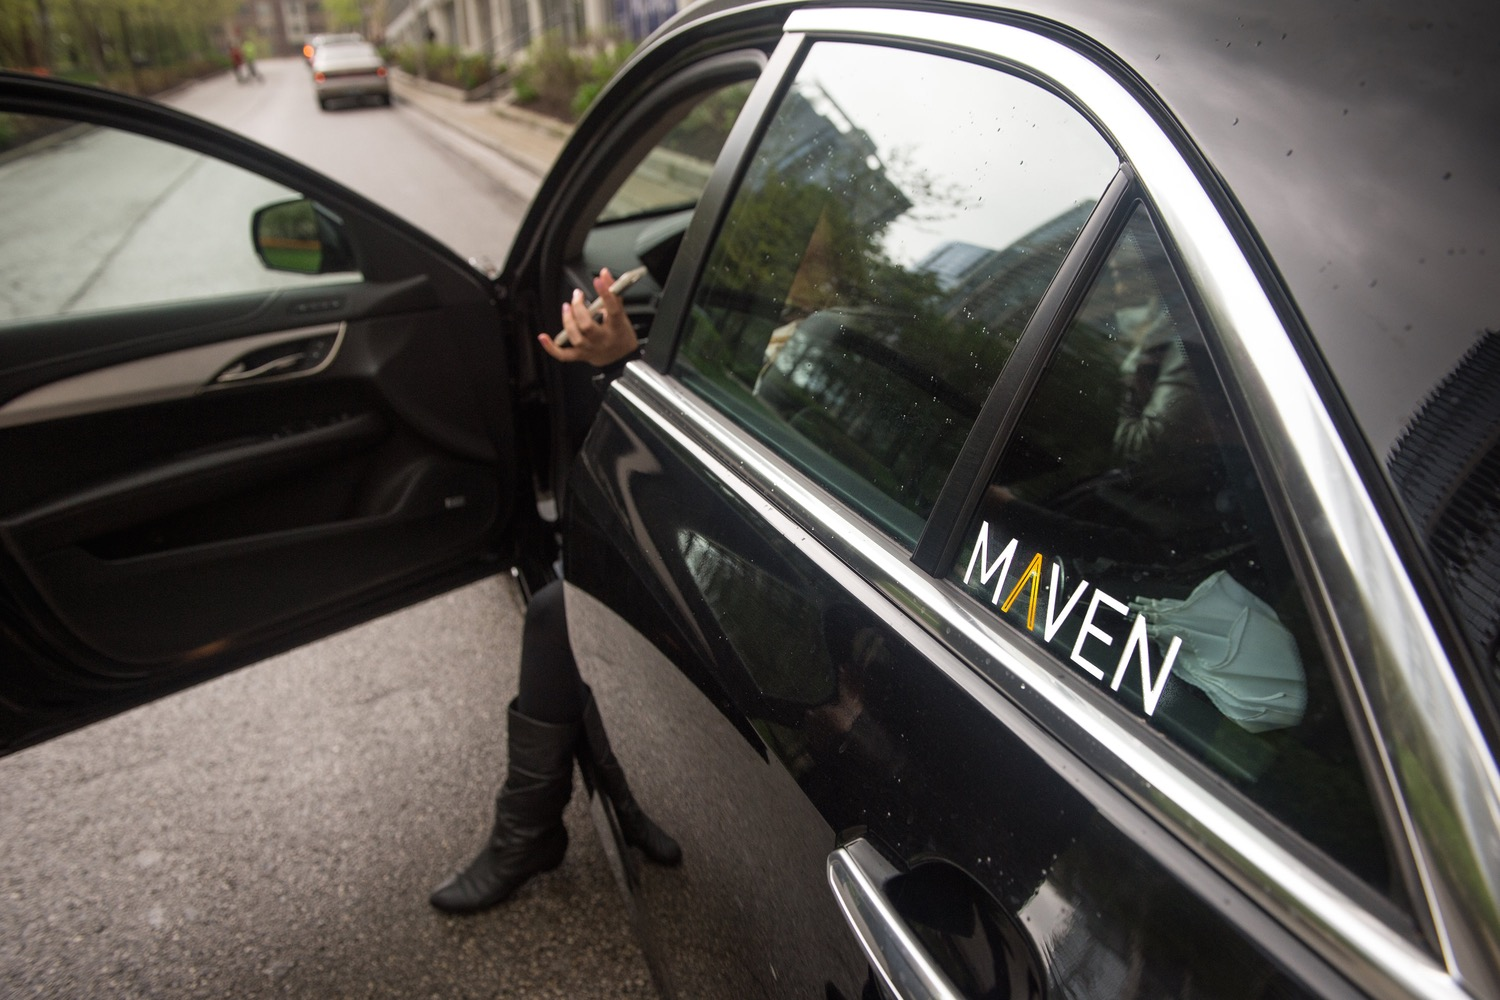 gm s maven personal mobility brand expands to three new